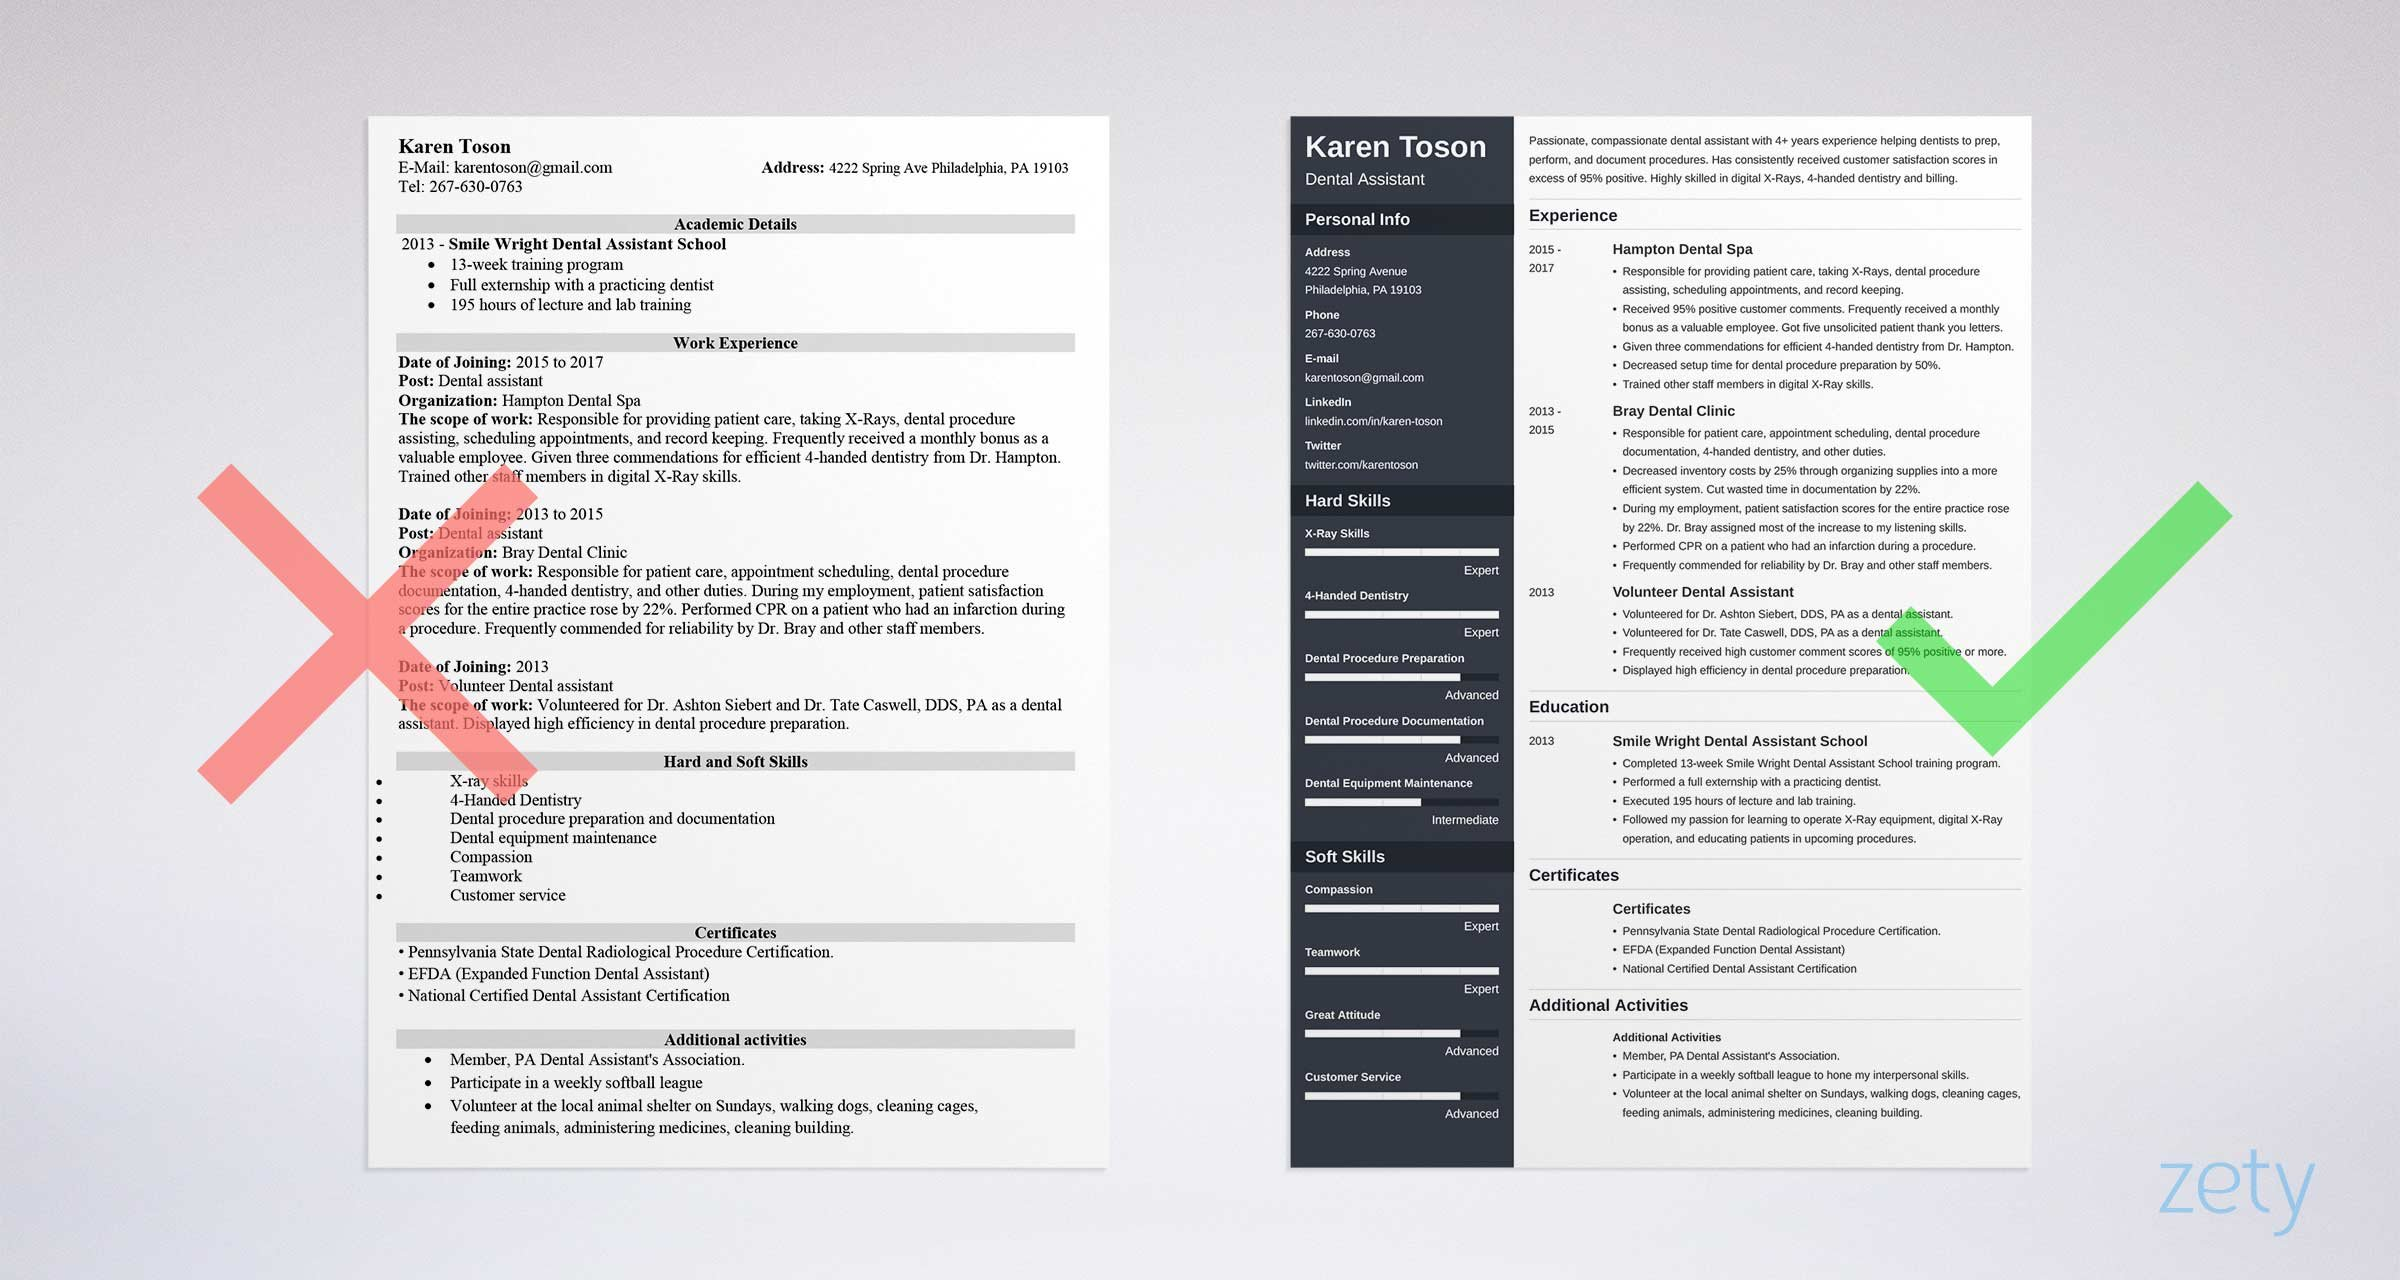 cdn-images.zety.com/pages/one_page_resume_template...